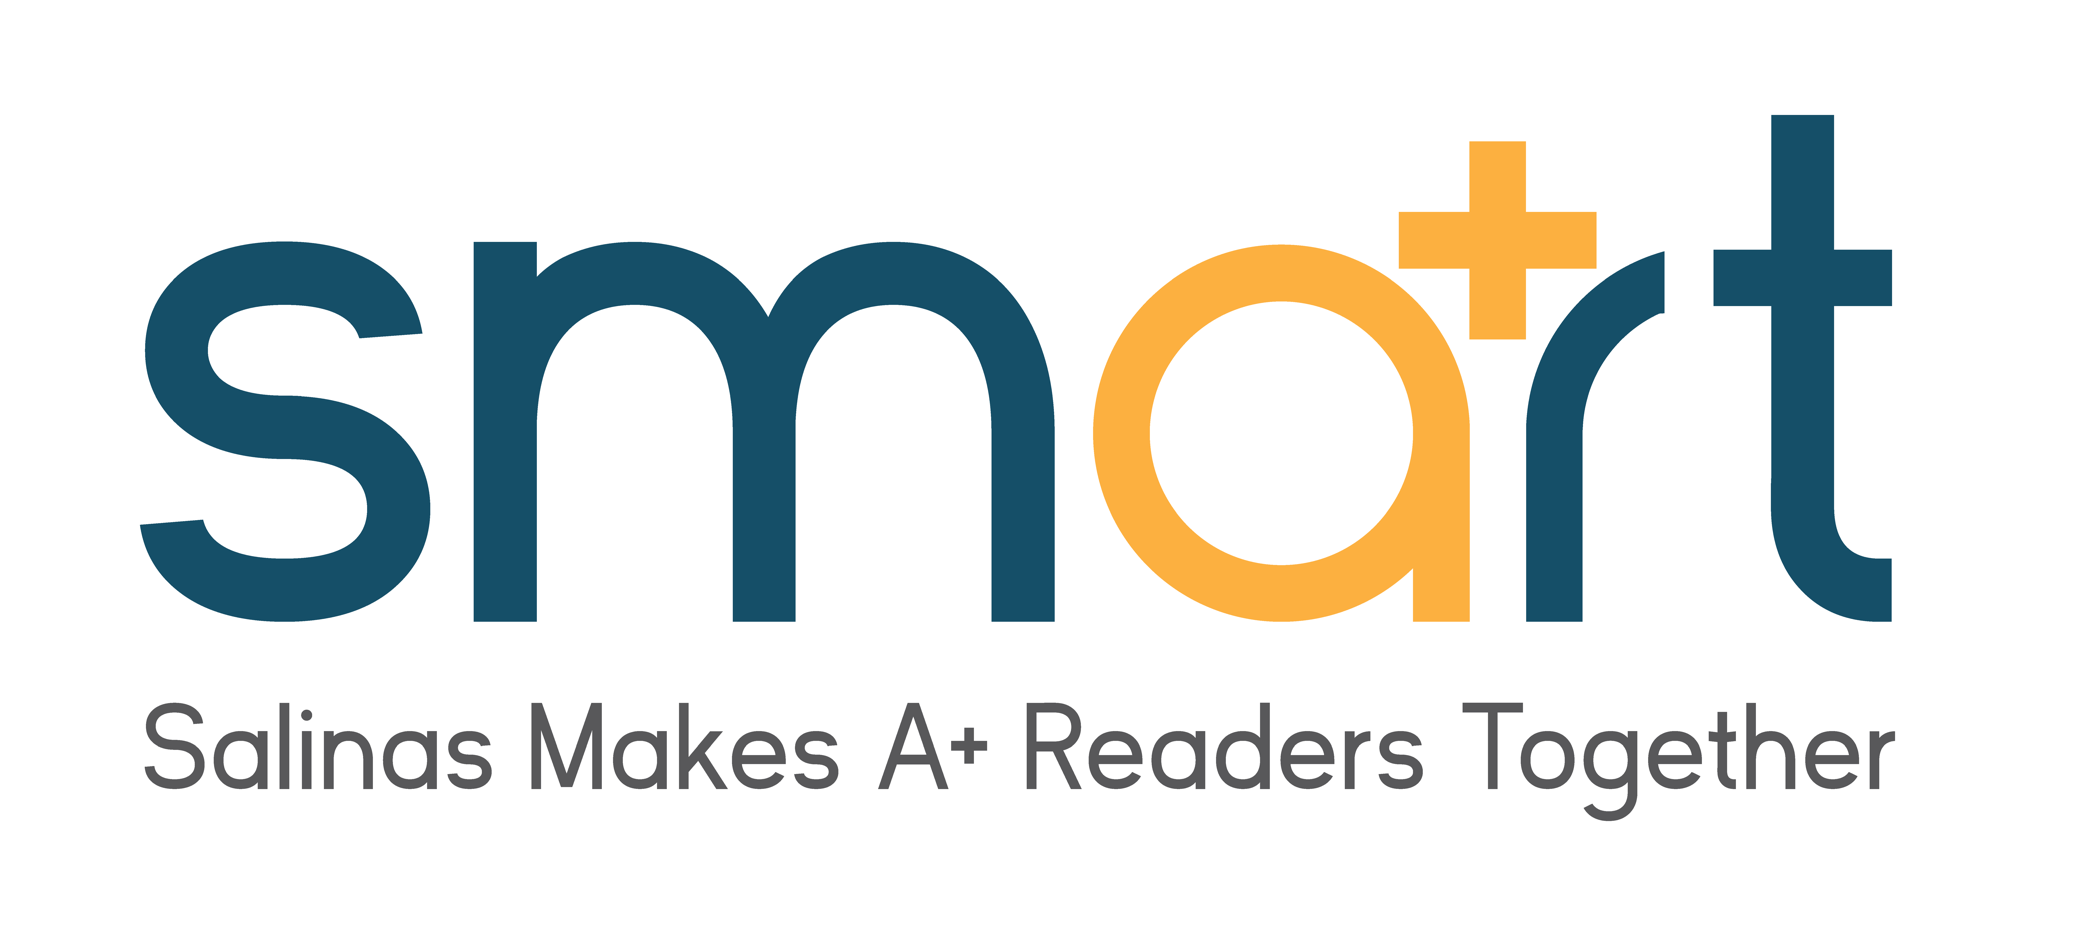 Smart Card logo - Salinas Makes A+ Readers Together